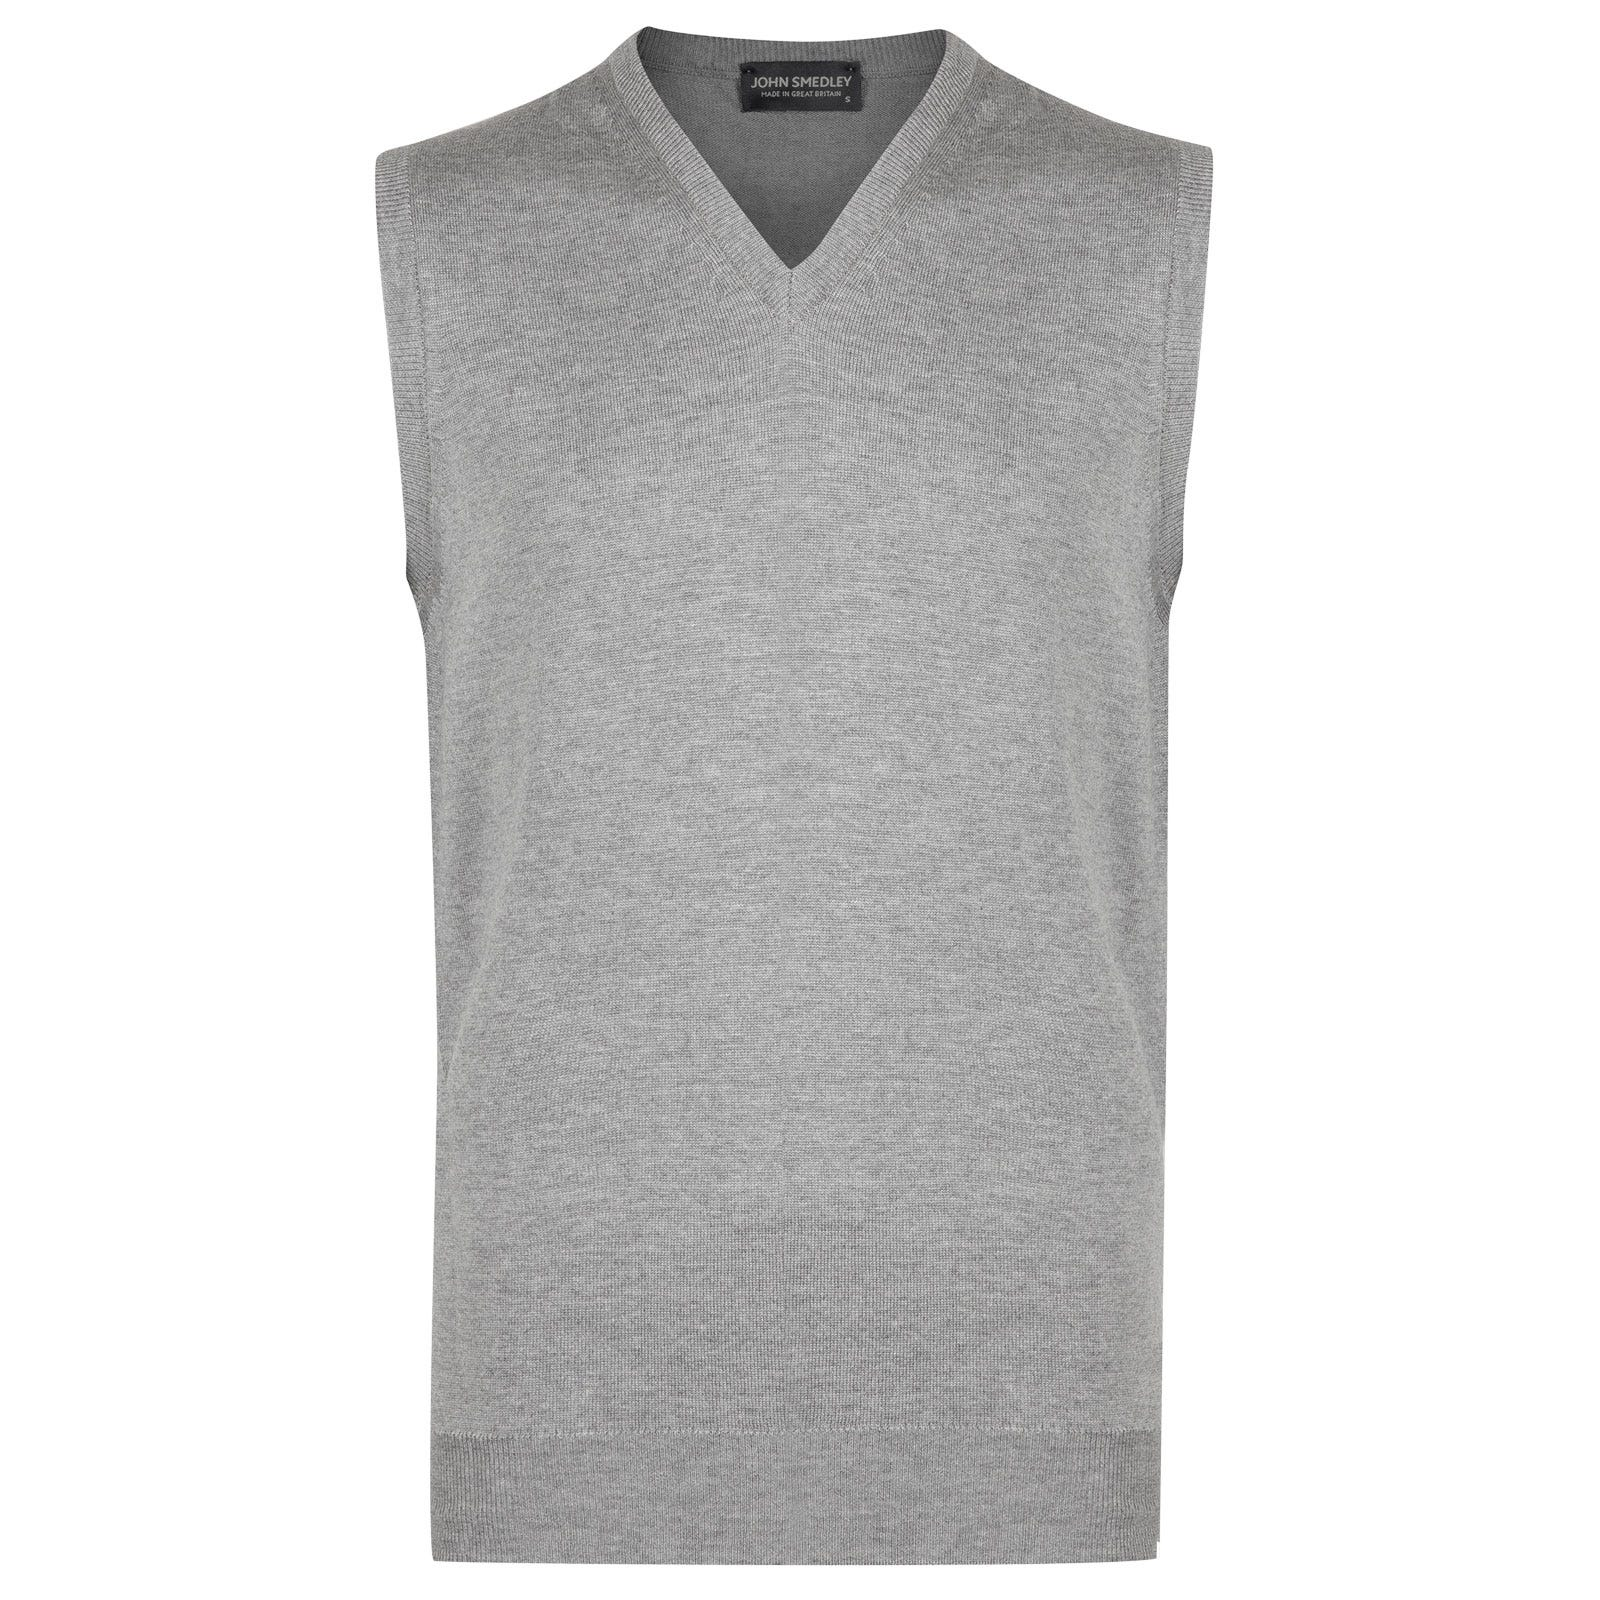 John Smedley hadfield Merino Wool Slipover in Silver-M